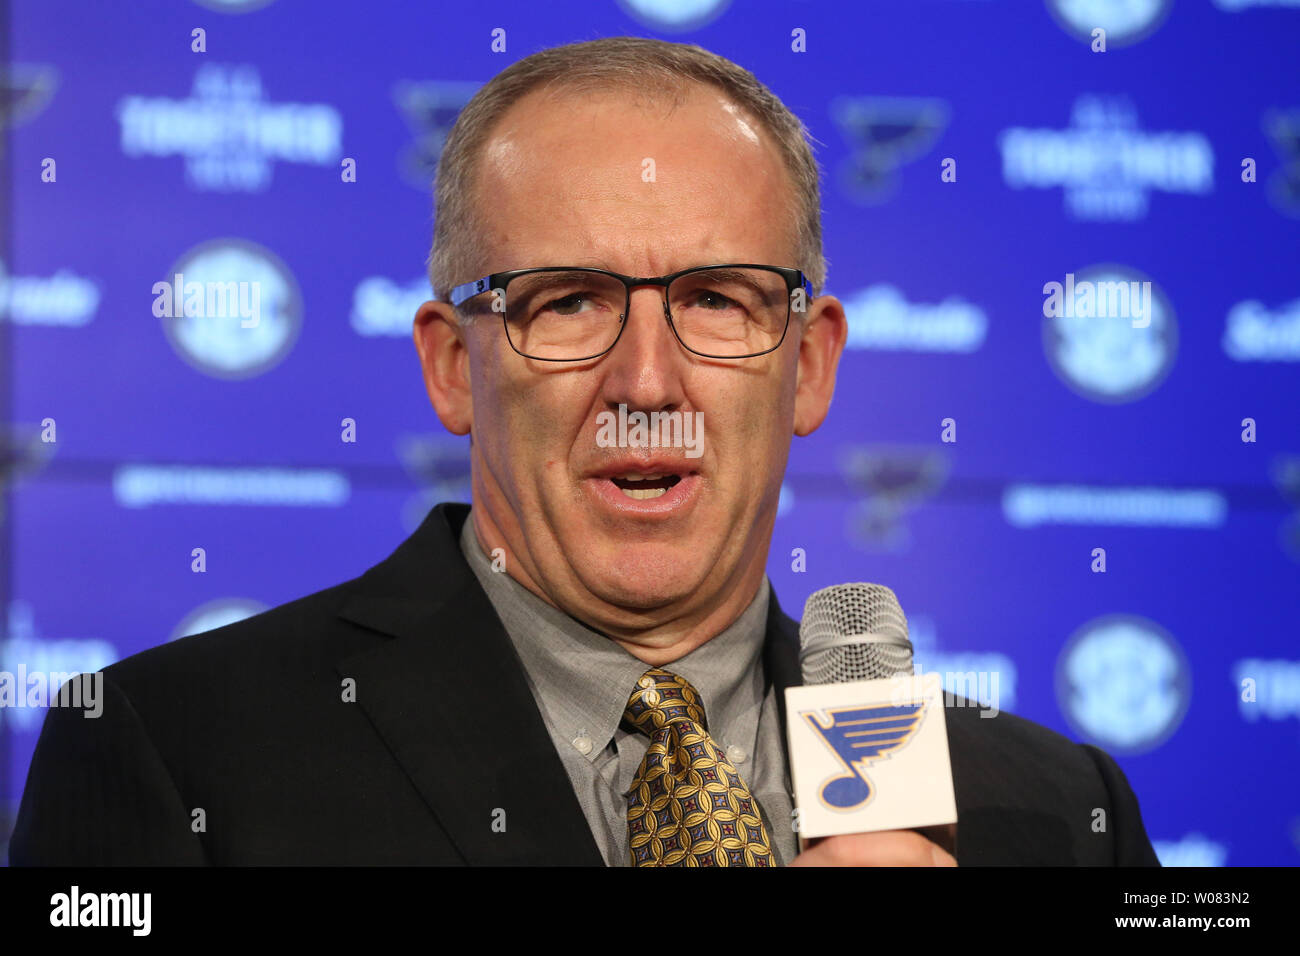 Southeastern Conference Commissioner Greg Sankey talks to reporters at the Scottrade Center in St. Louis on February 8, 2018. Sankey toured the Scottrade Center in advance of the SEC Basketball Tournament that will be held at the facility March 7-11.  Photo by Bill Greenblatt/UPI Stock Photo